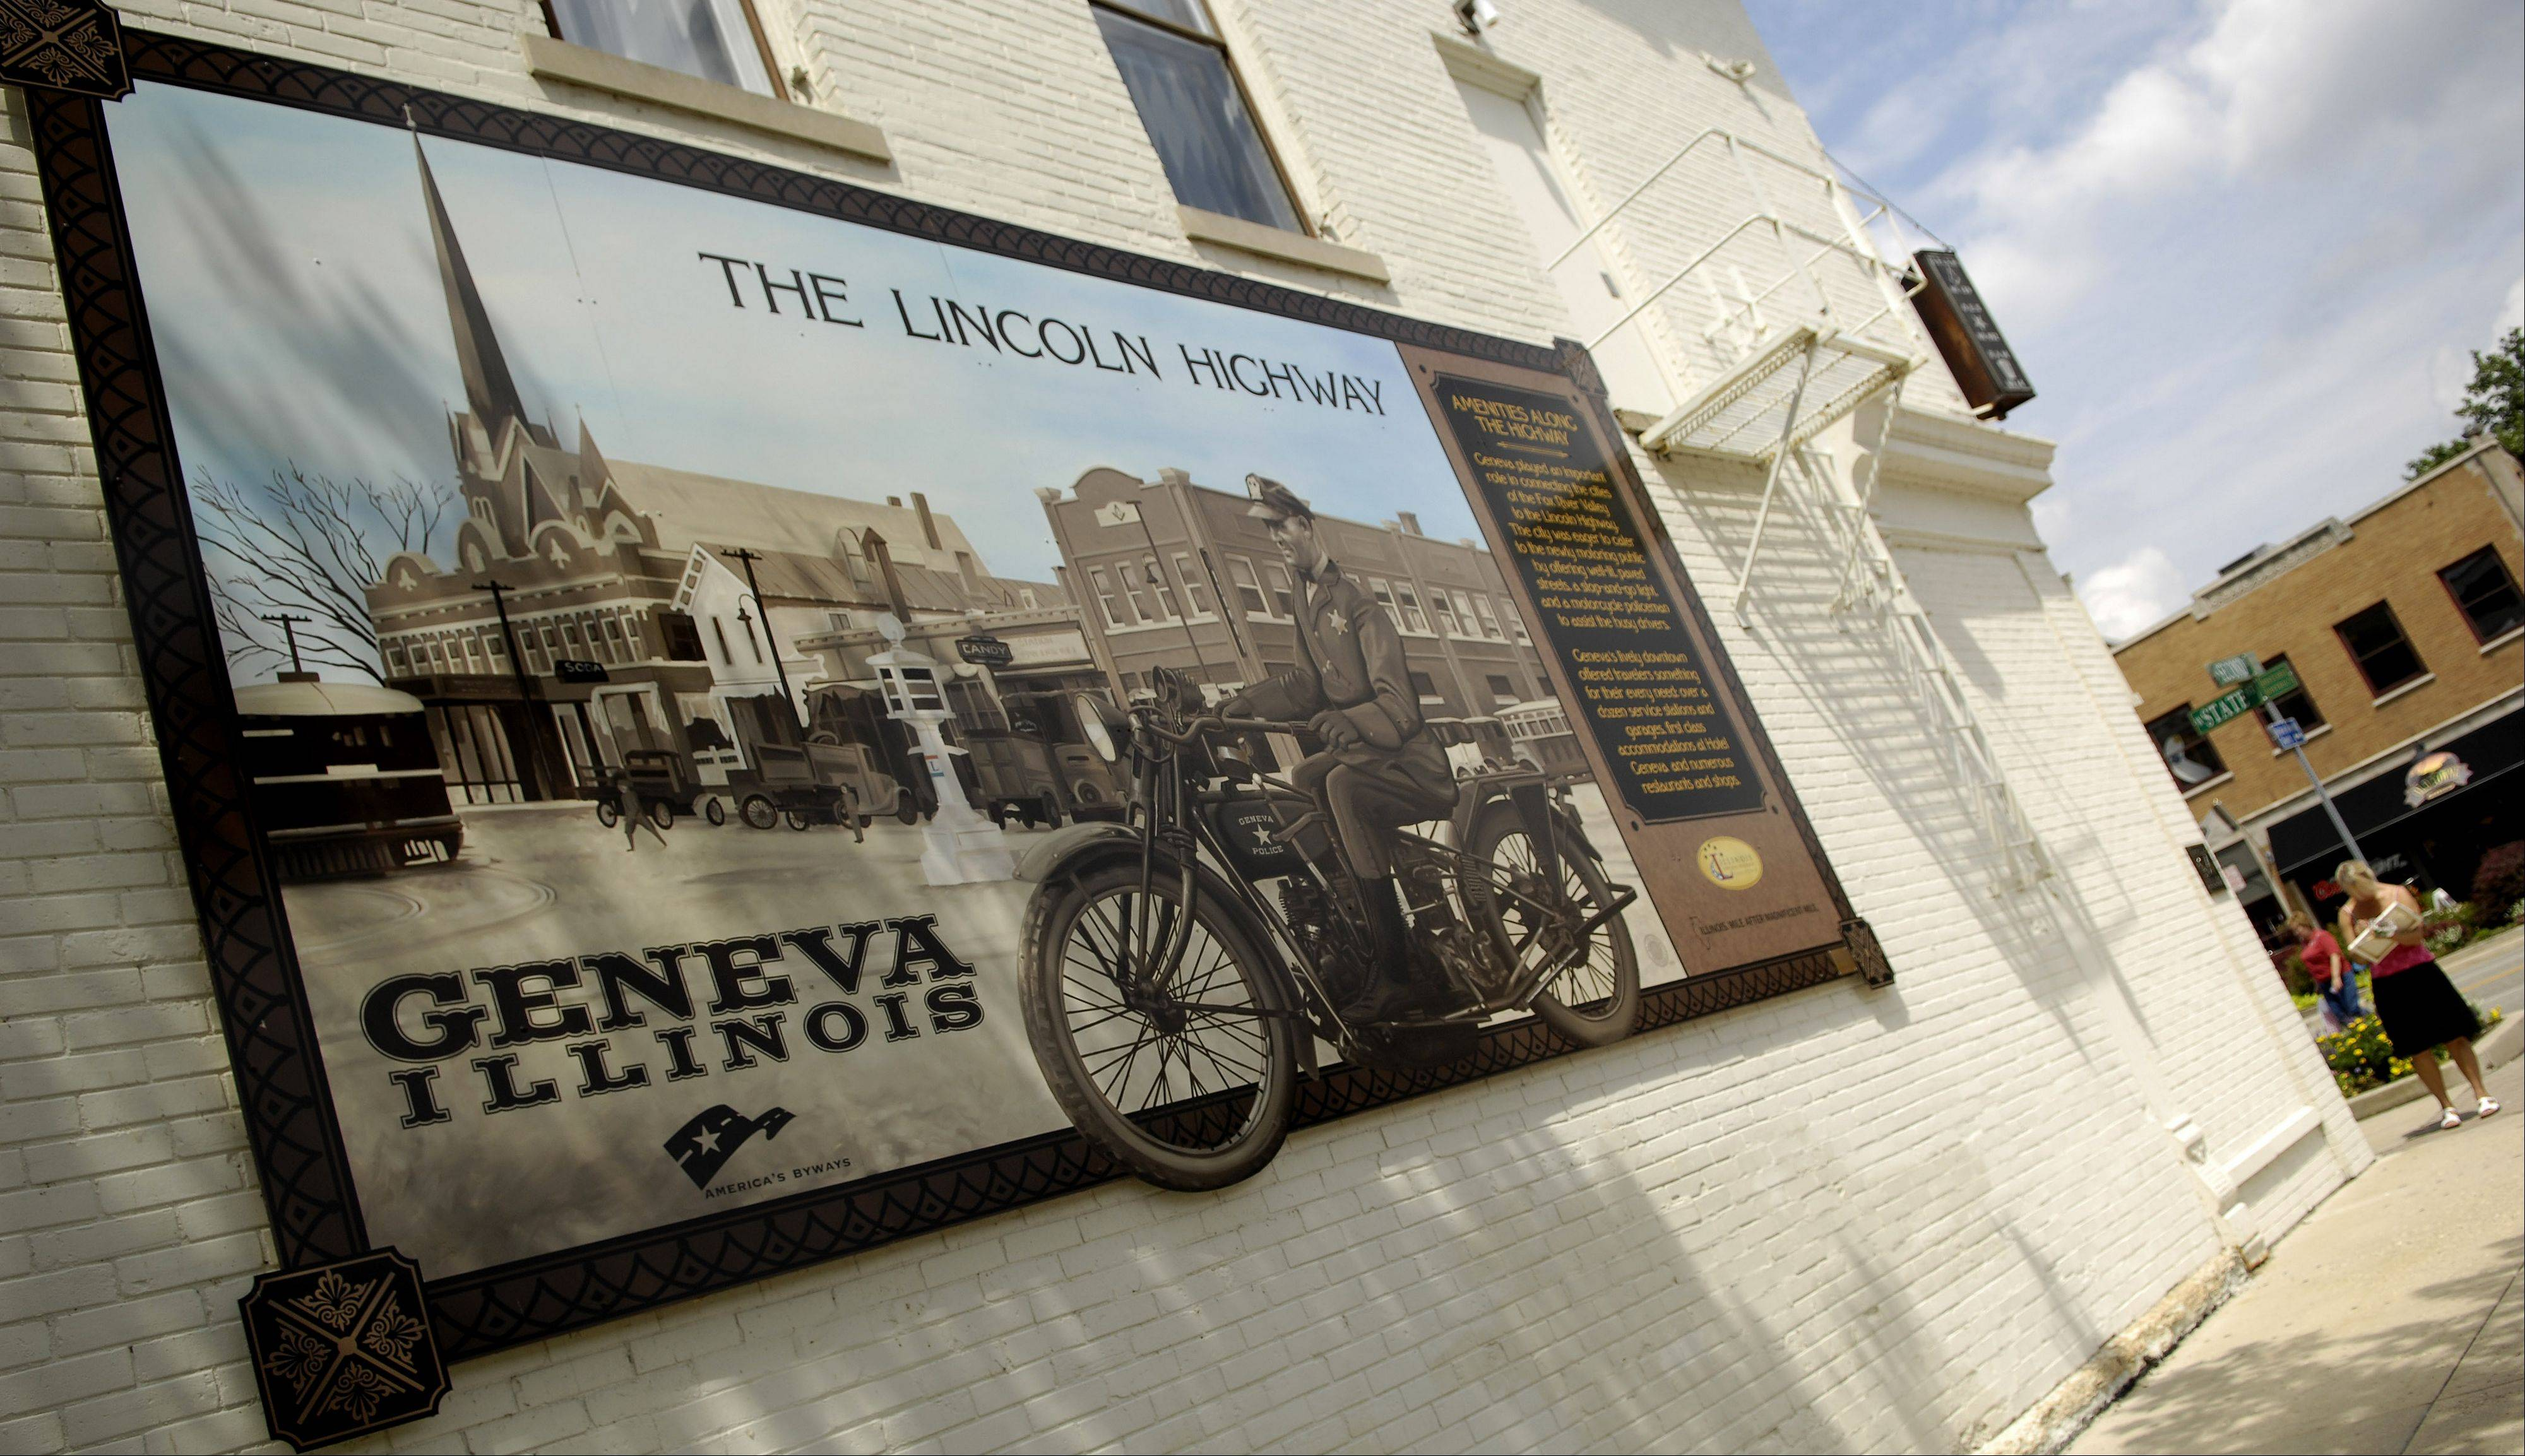 The Illinois Lincoln Highway Coalition's Interpretive Mural Project, in which murals are hung in a prominent place in the community as a dedication to the history of the highway, includes this installation on South Second Street in Geneva as well as others in St. Charles and Maple Park.